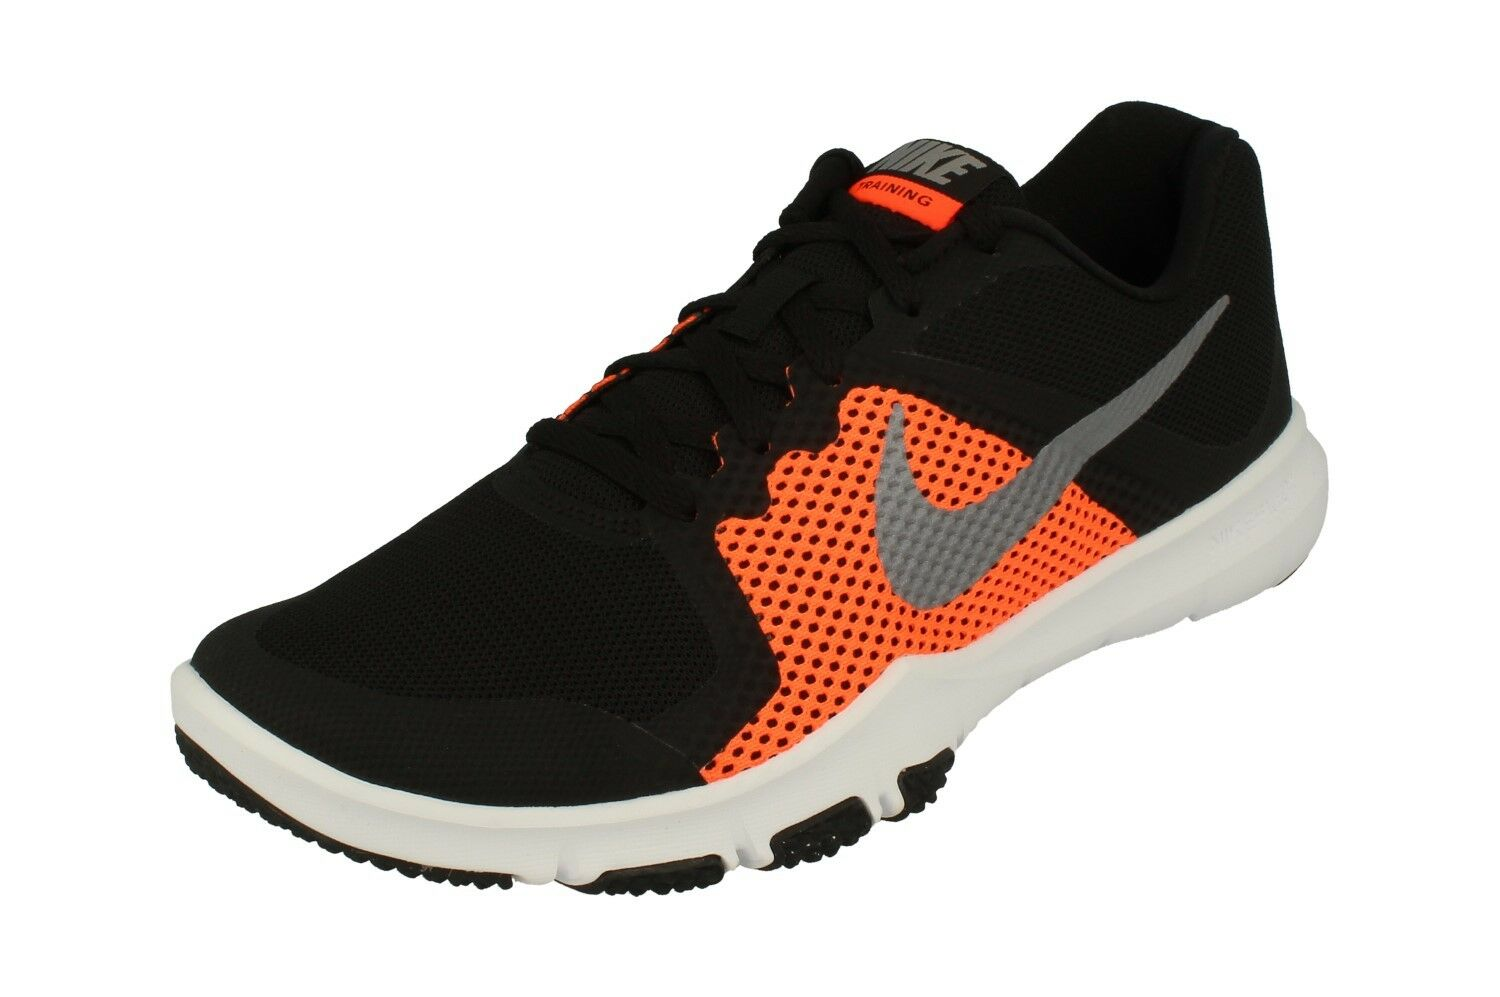 best cheap bed04 95bb1 Nike Nike Nike Flex Control homme Running Baskets 898459 Baskets Chaussures  016 e4e805